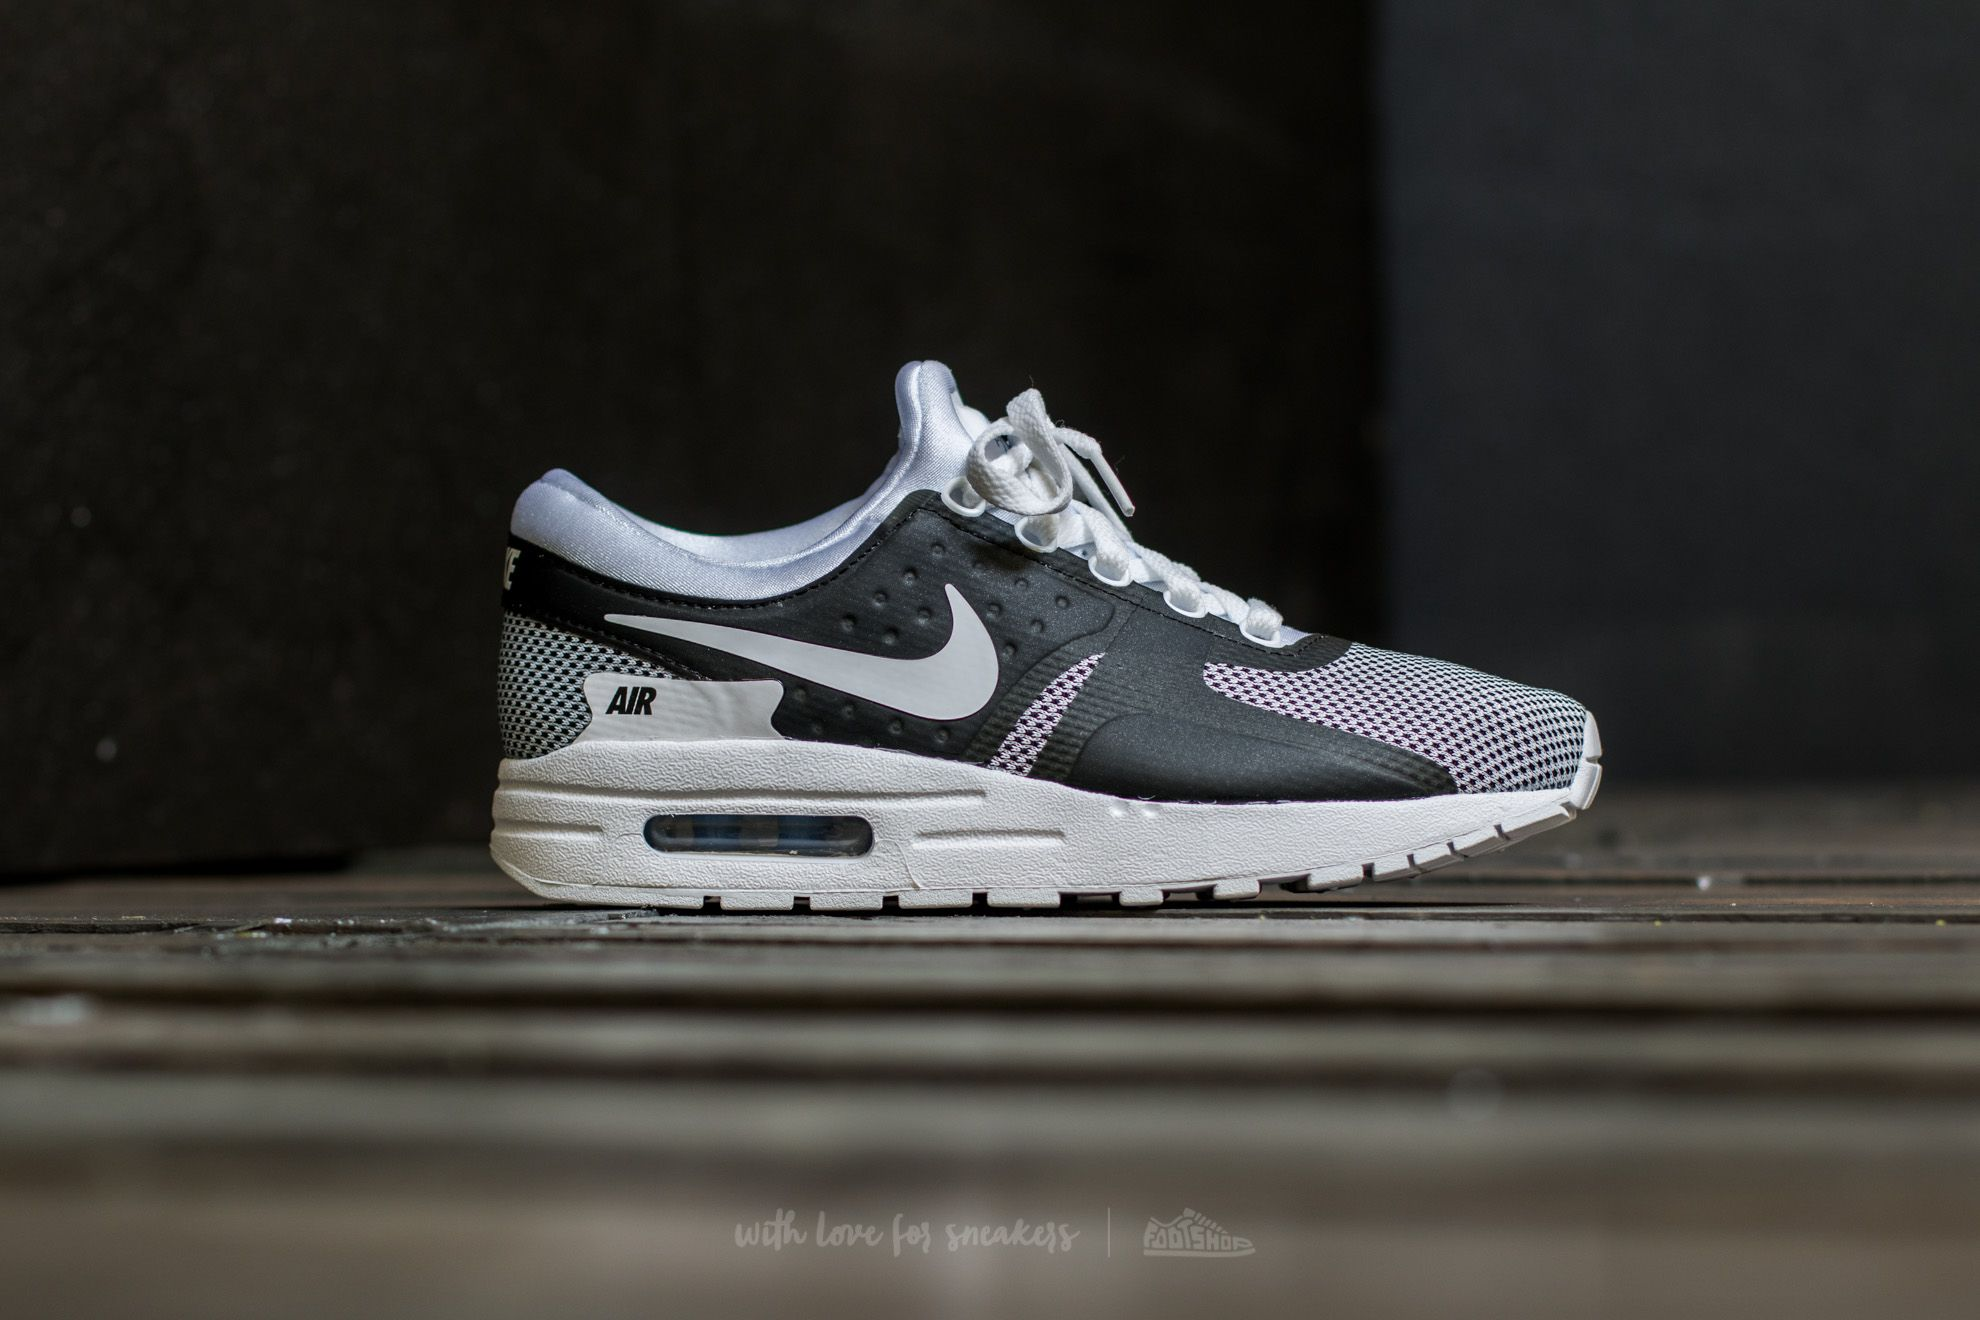 Nike Air Max Zero Essential GS White / White-Obsidian-Soar | Footshop